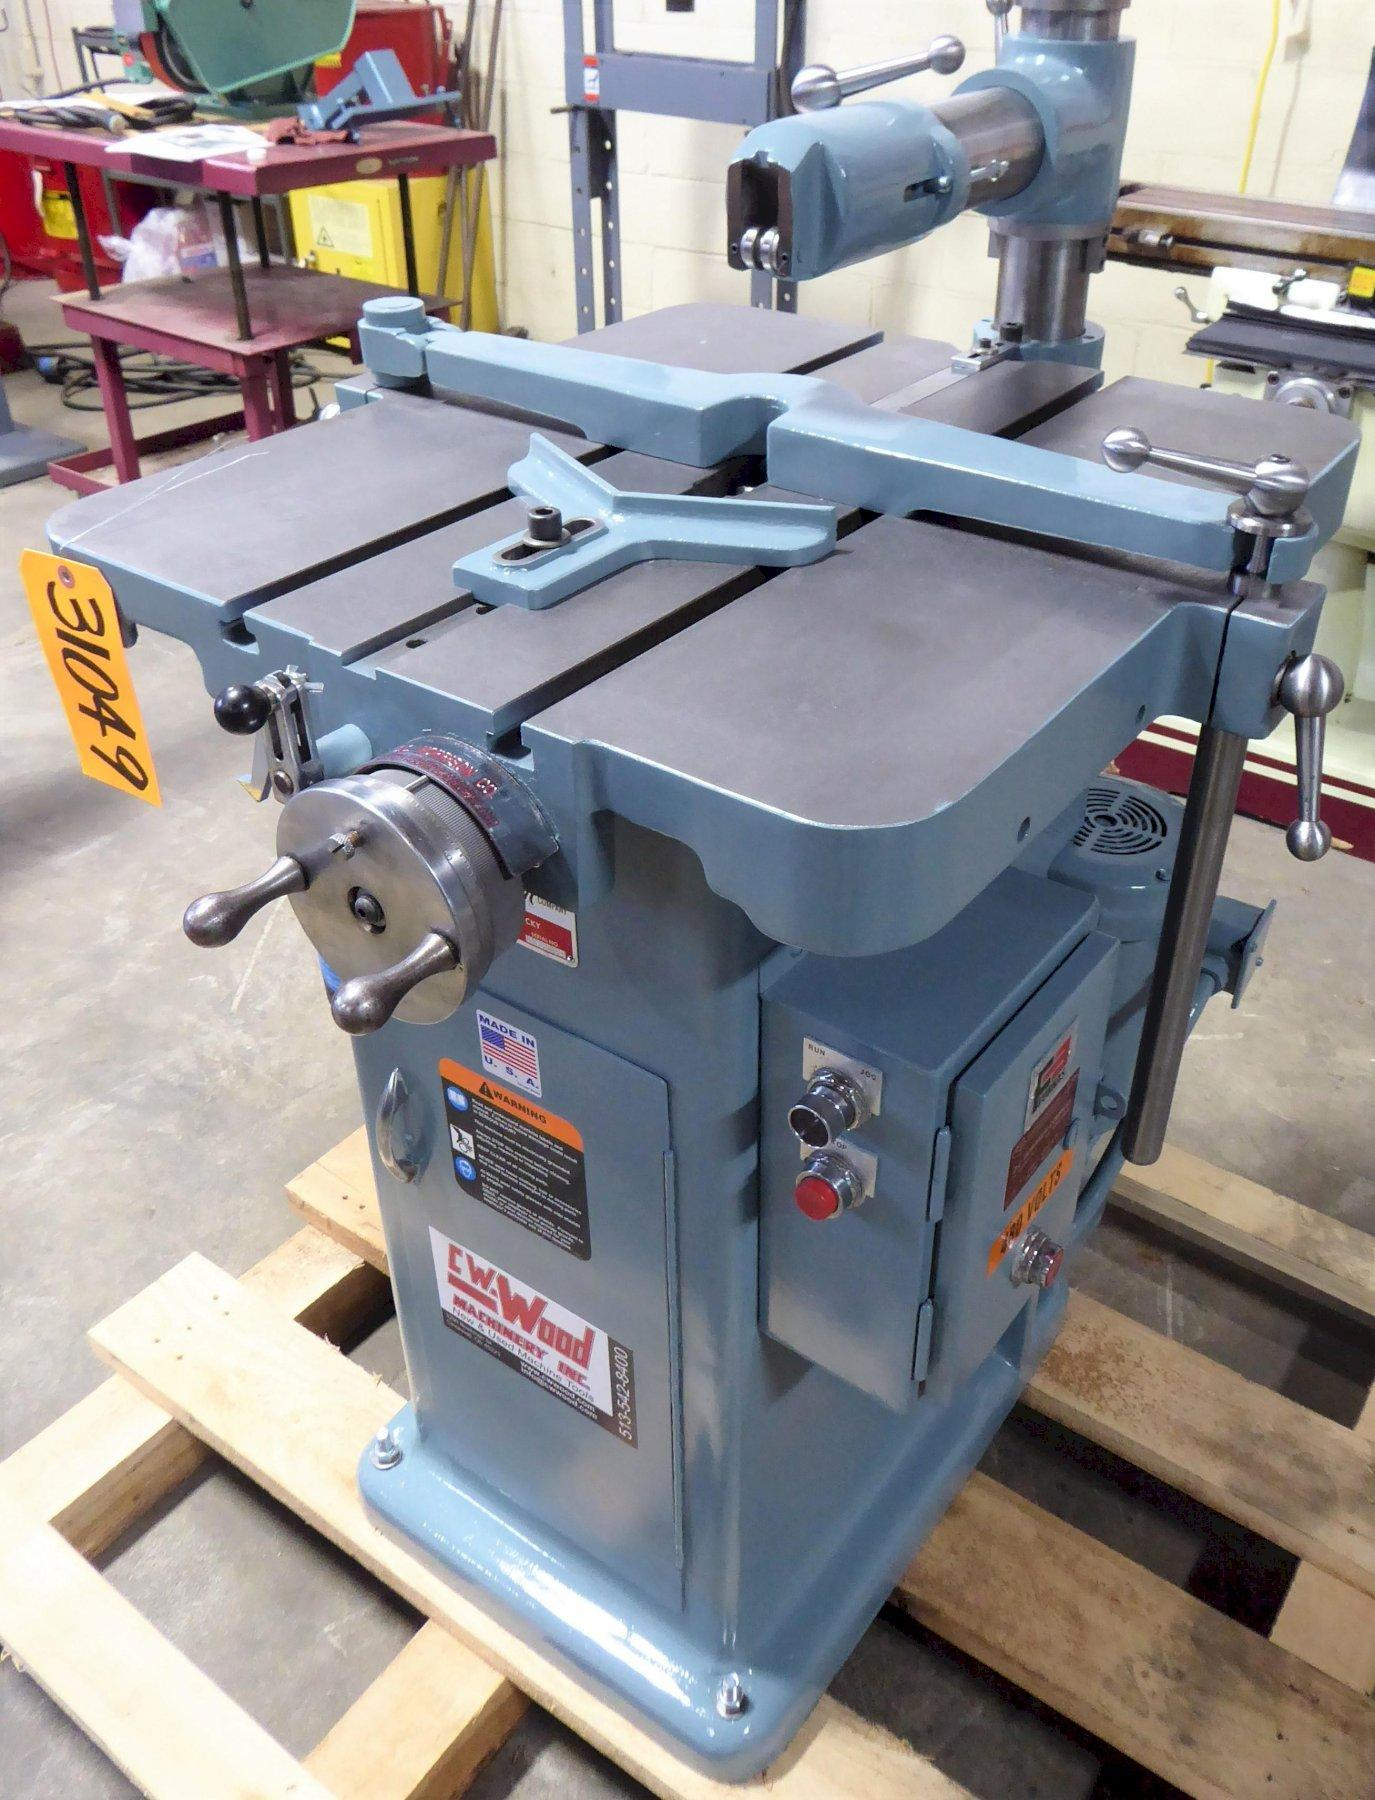 1-1/4″ W. x 9″ L., MORRISON Keyseater 1/16″ to 1-1/4″ Capacity, 24″ x 27″ Table, Factory Rebuilt August 2021